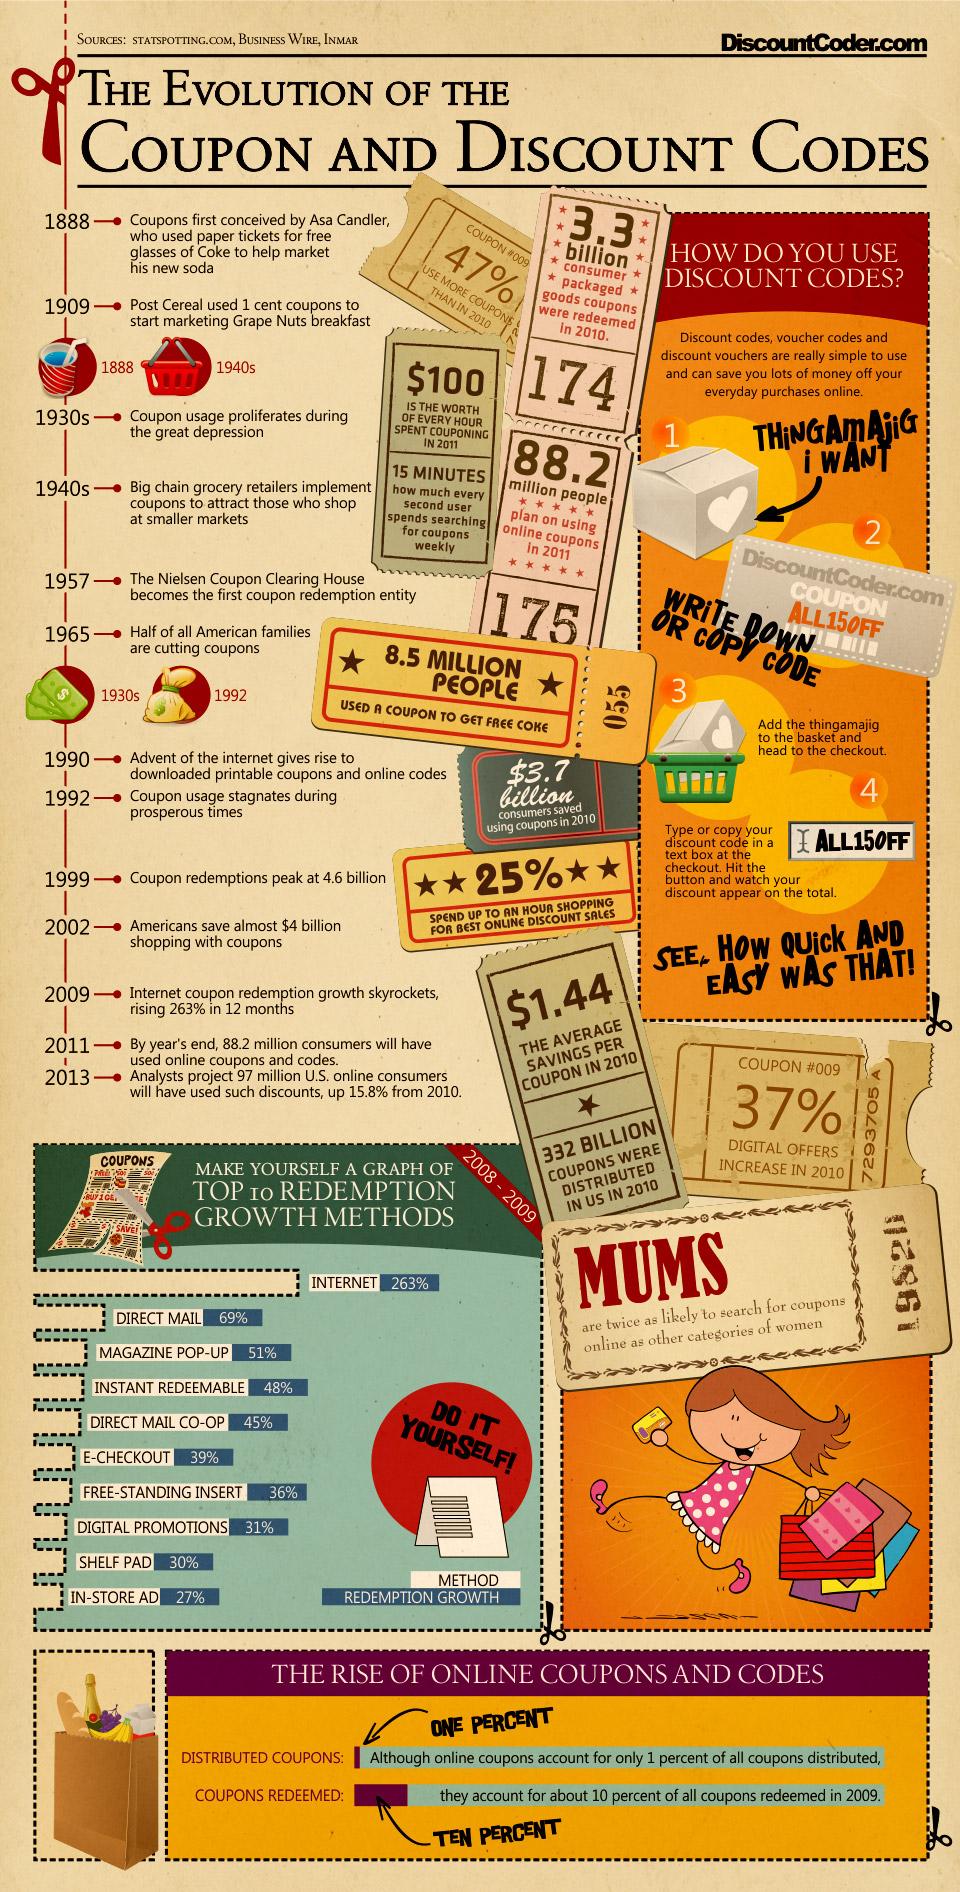 Evolution of Coupons and Discount Codes